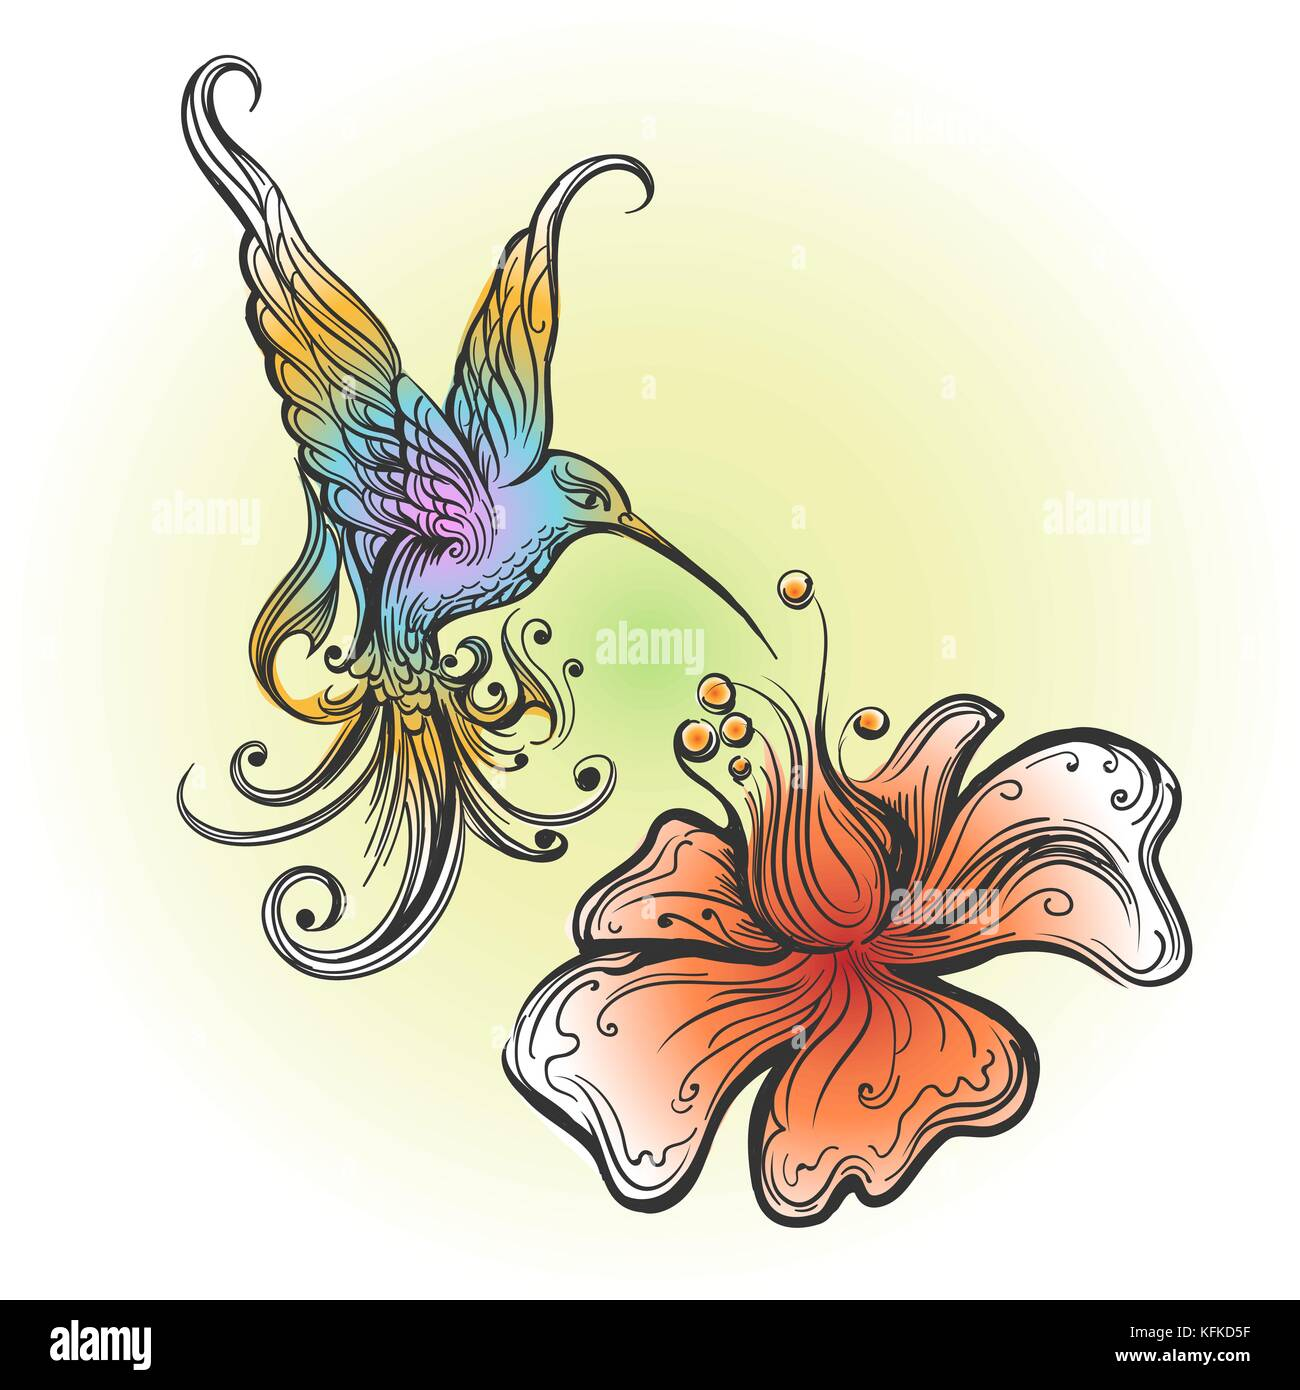 Flying Hummingbird Sipping Nectar From Flower Drawn In Tattoo Style